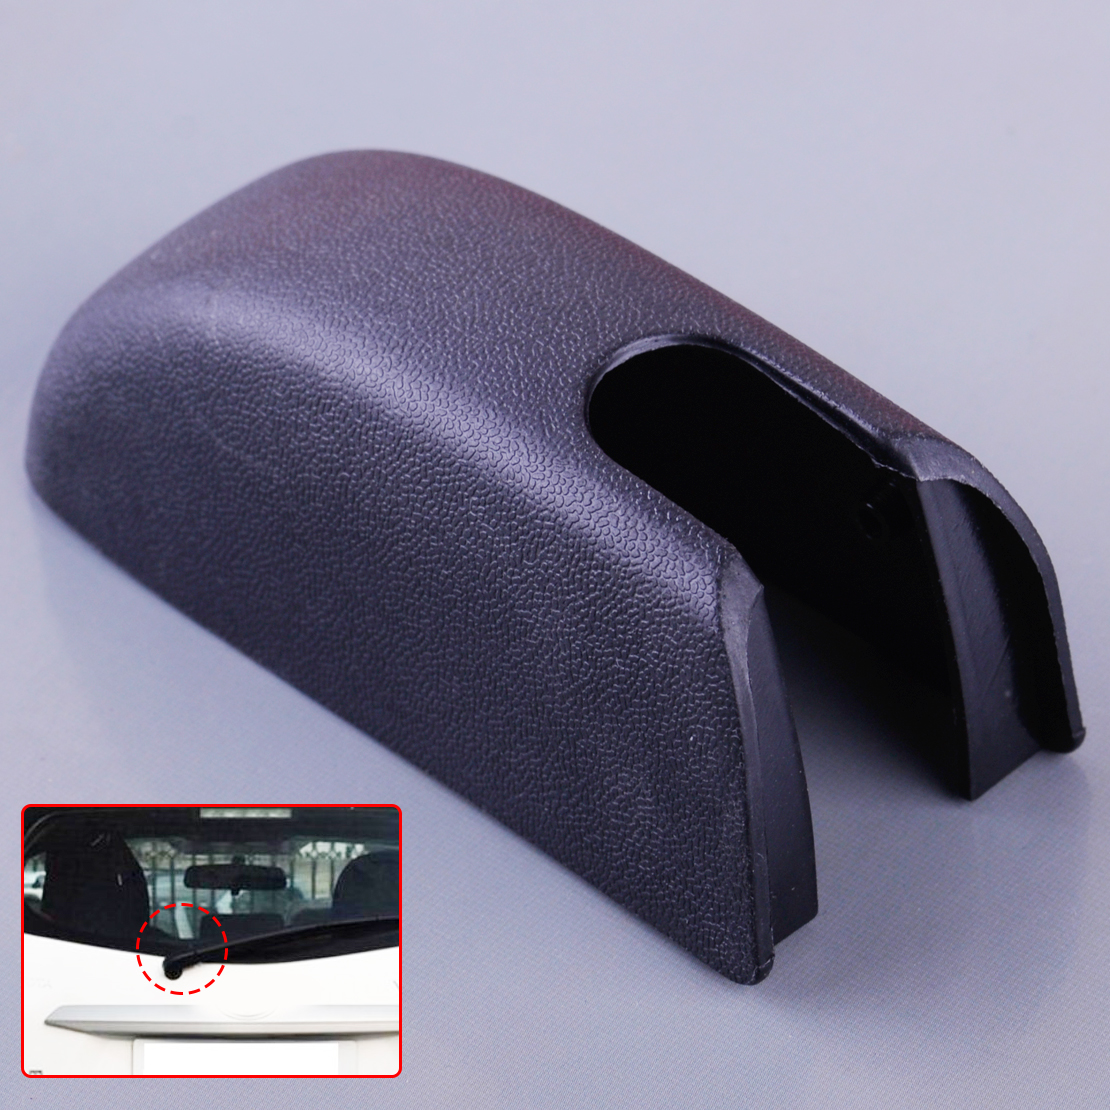 DWCX Car Rear Wiper Arm Cover Cap 85292-35010 Fit for Toyota 4Runner Highlander Lexus GX470